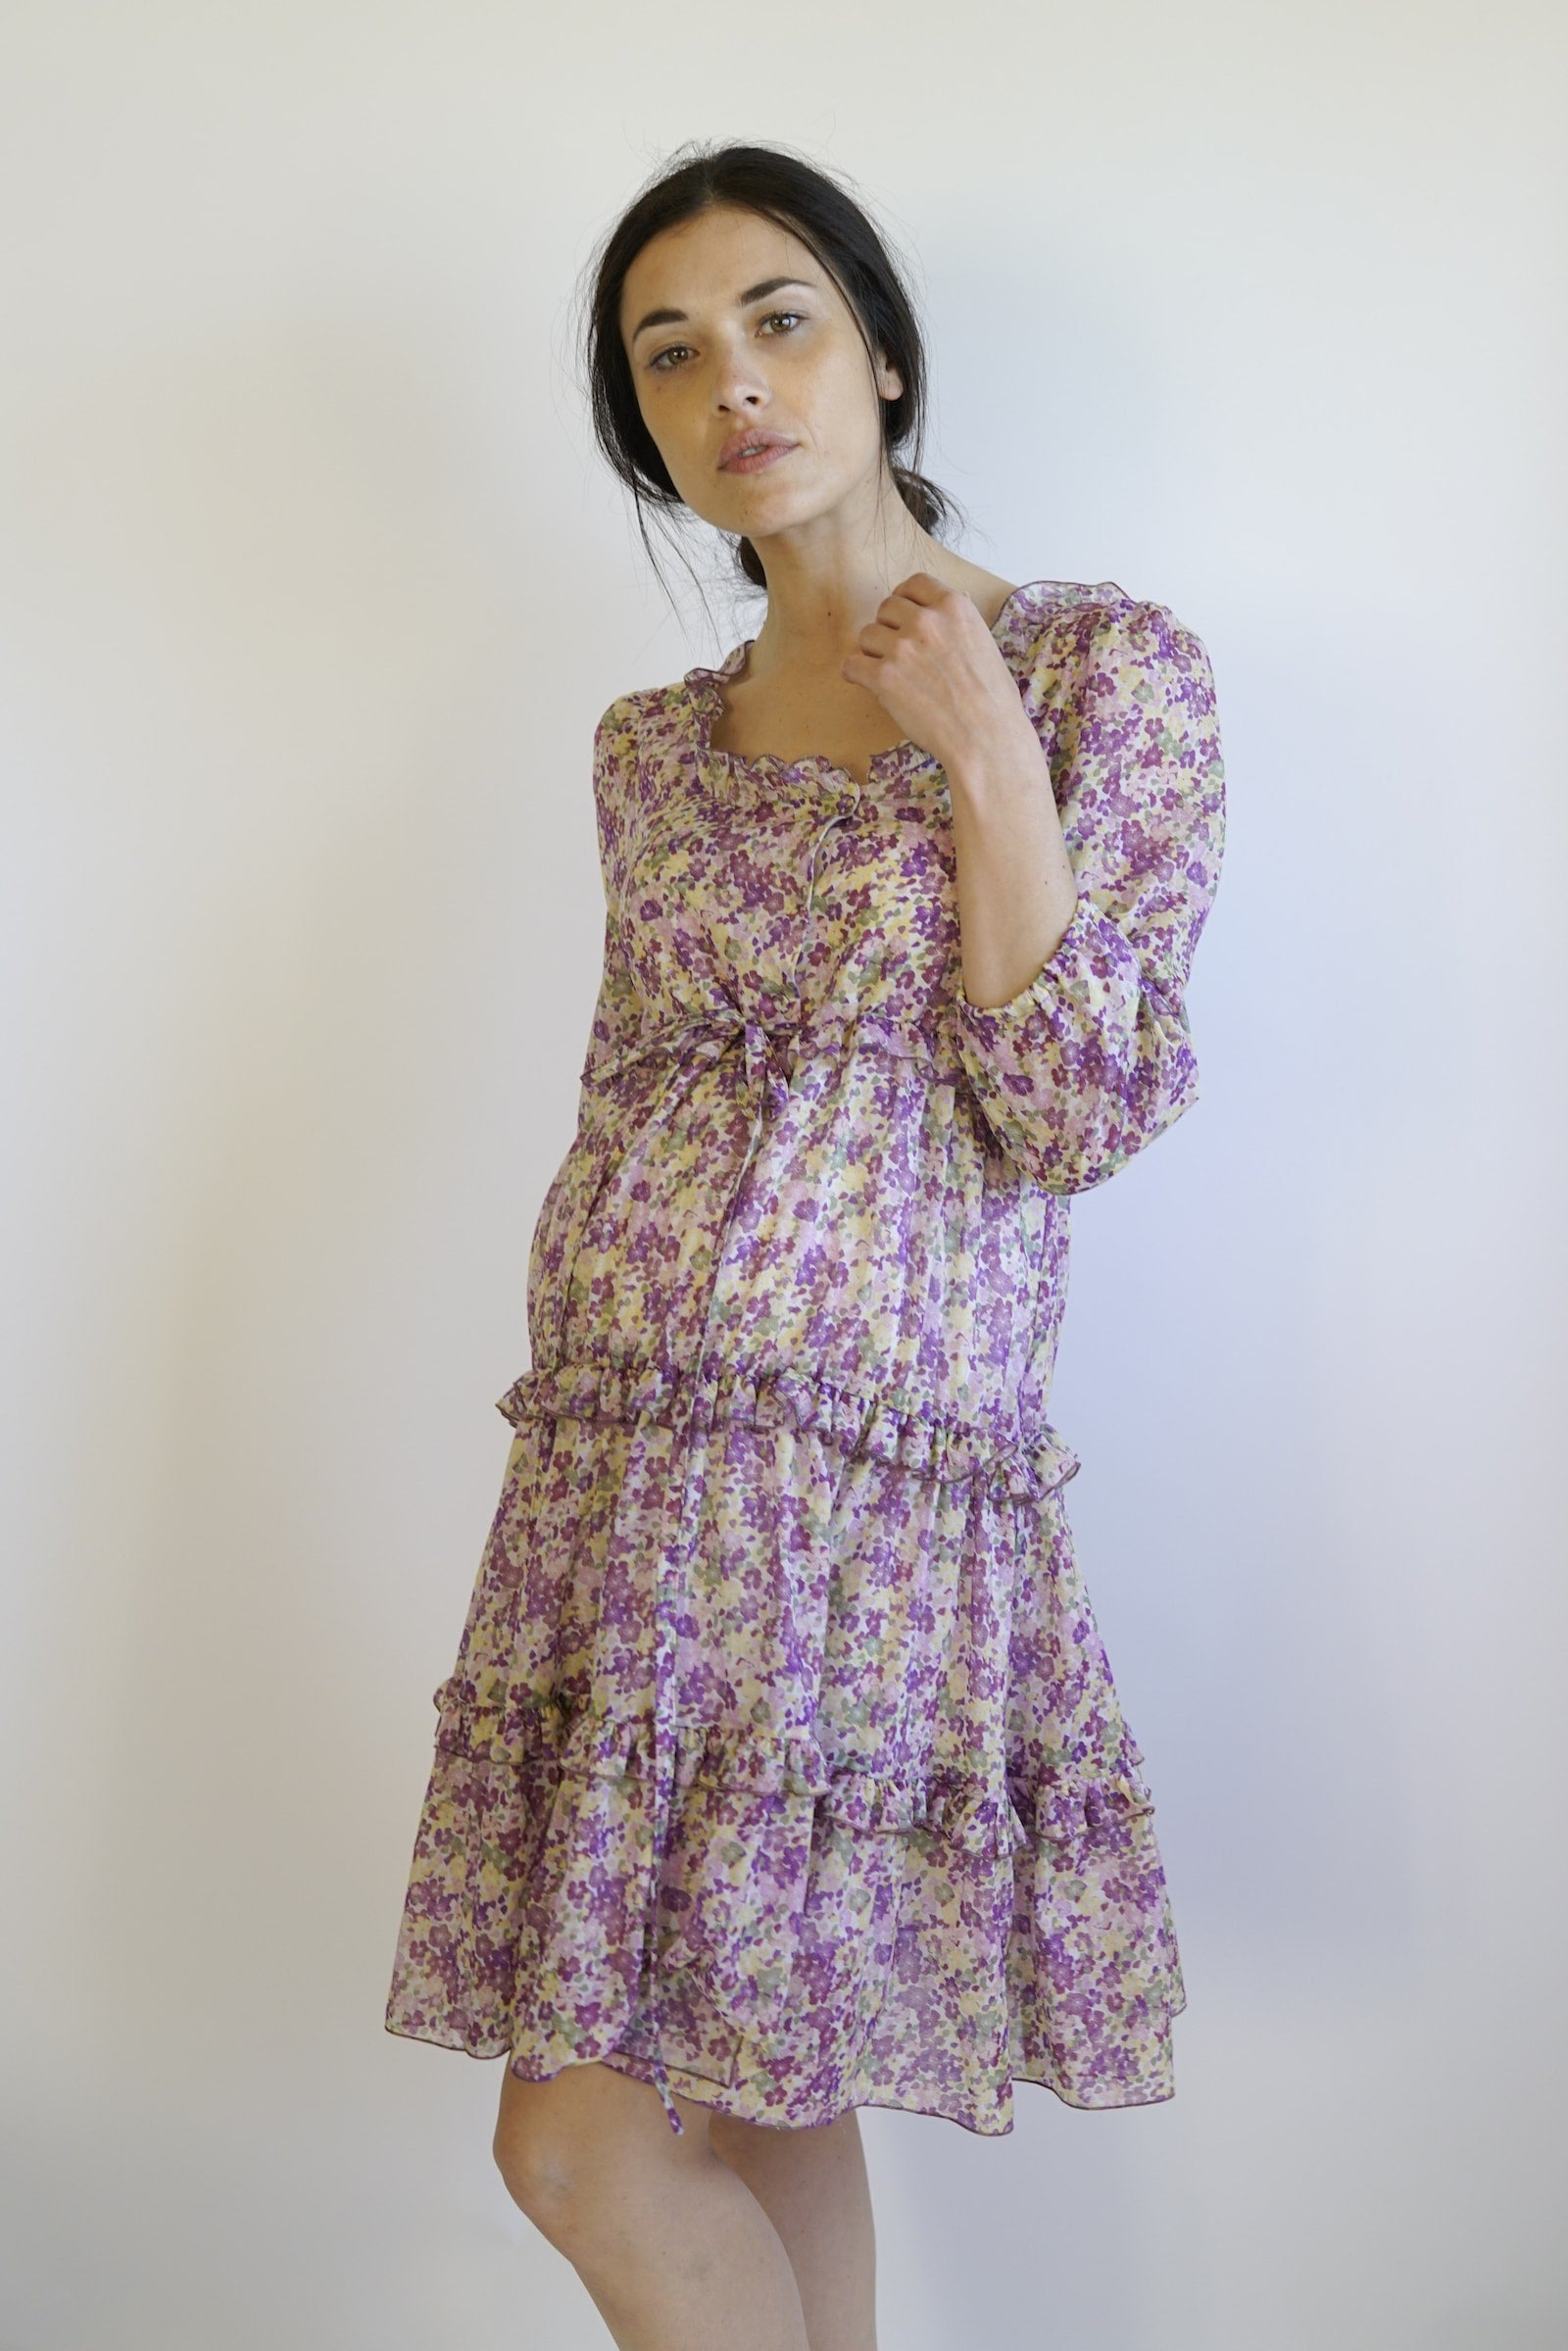 Lolla maternity dress -maternity dress - violet